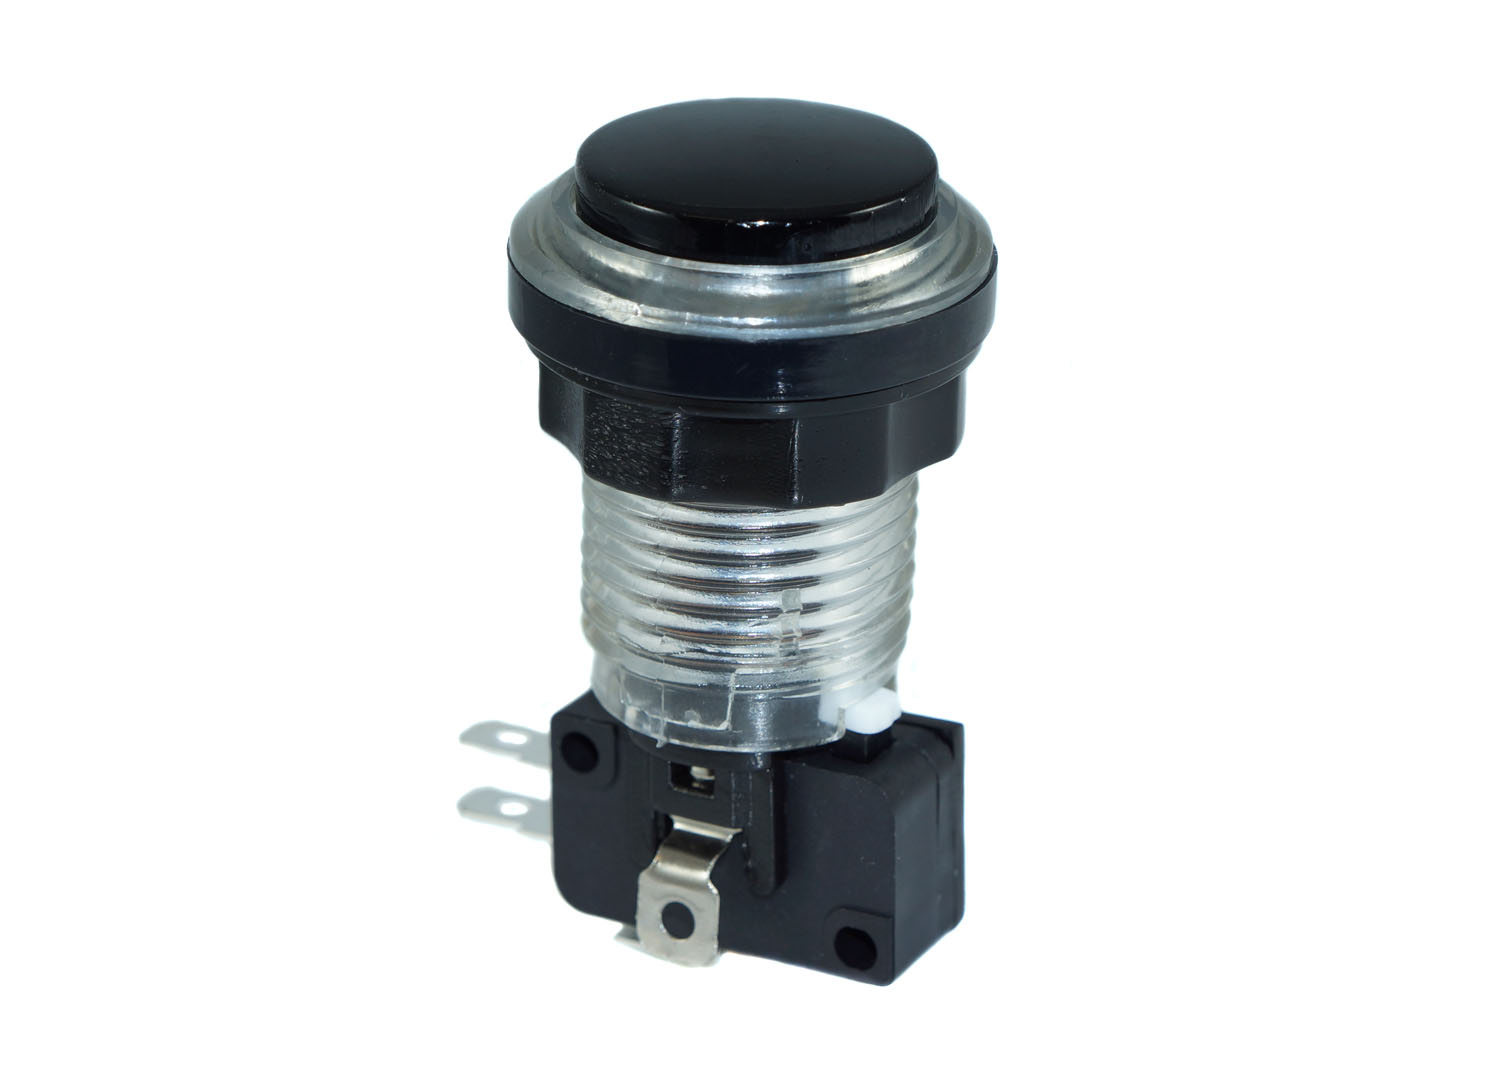 White Led Bezel Eclipse Pushbutton Black Plunger Electrical Wiring Push Button Switch